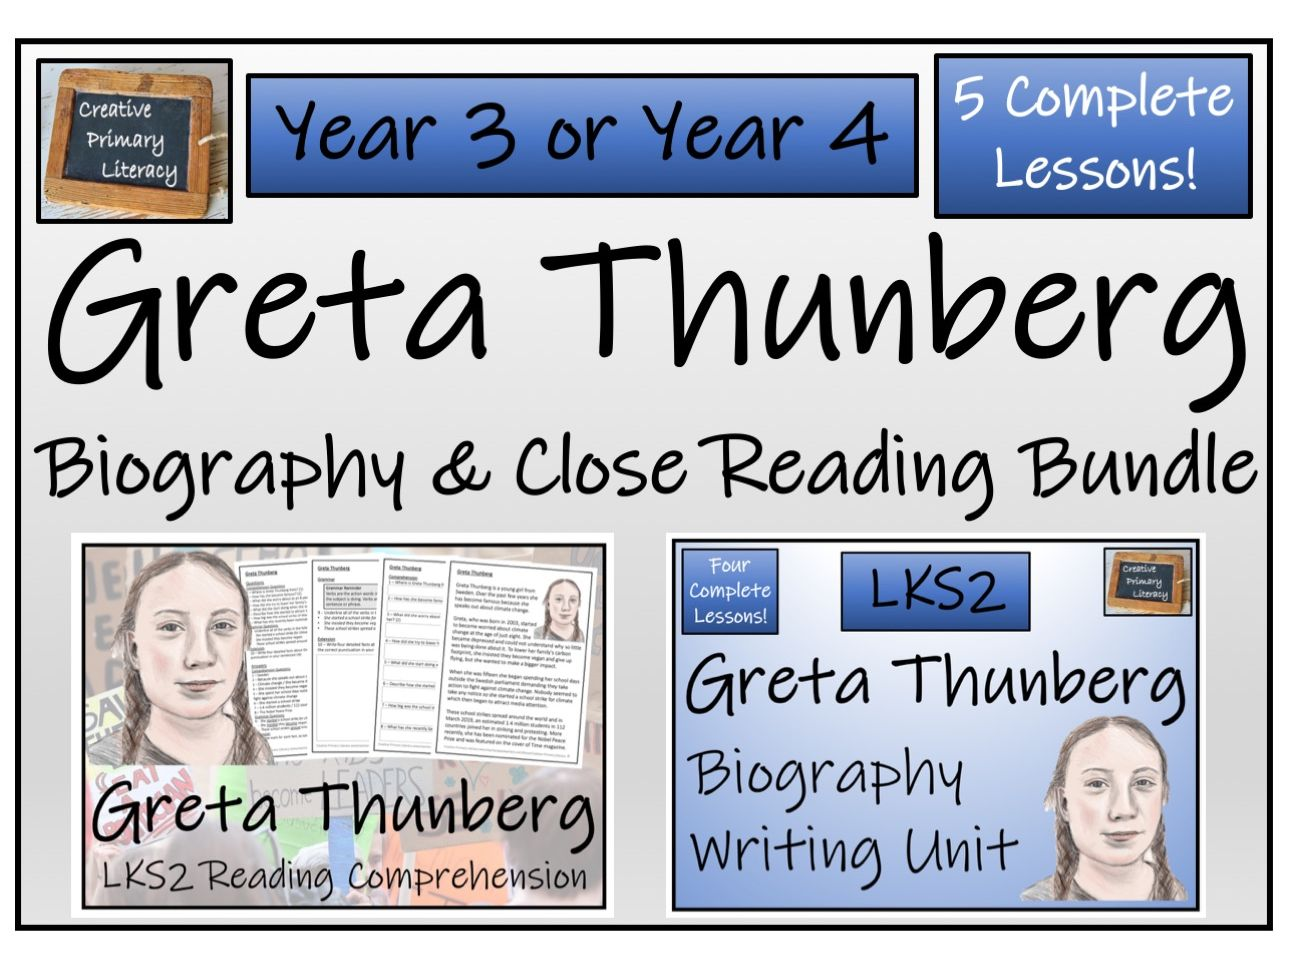 LKS2 Literacy - Greta Thunberg Reading Comprehension & Biography Bundle